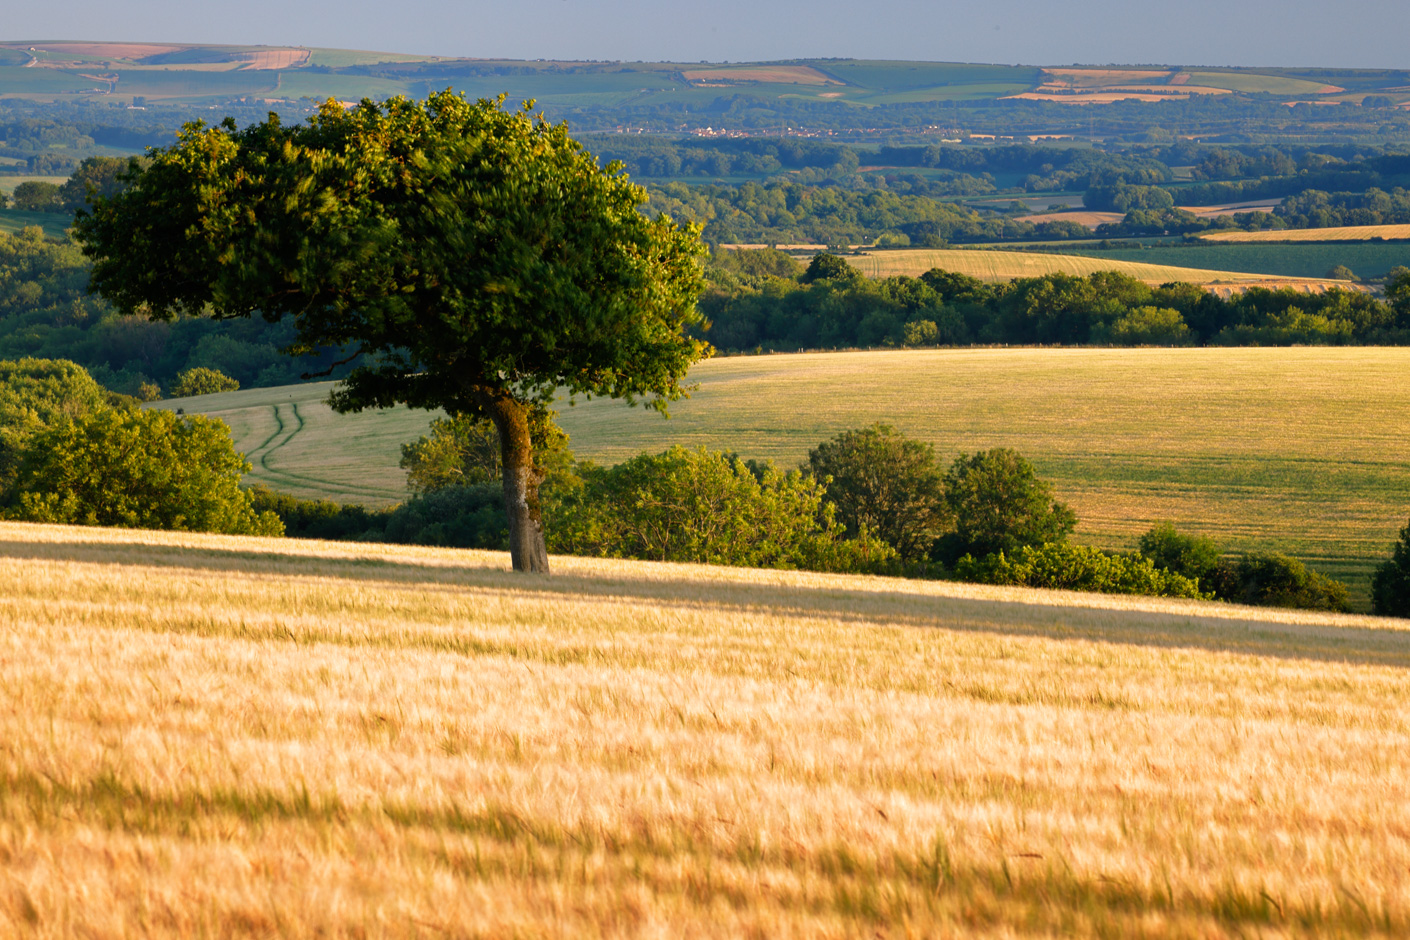 A solitary tree in a field of golden barley on Bulbarrow Hill, Dorset. Canon EOS R5, EF 100-400mm f/4.5-5.6 L IS II USM lens at 278mm, 1/2 sec at f/22, ISO 100